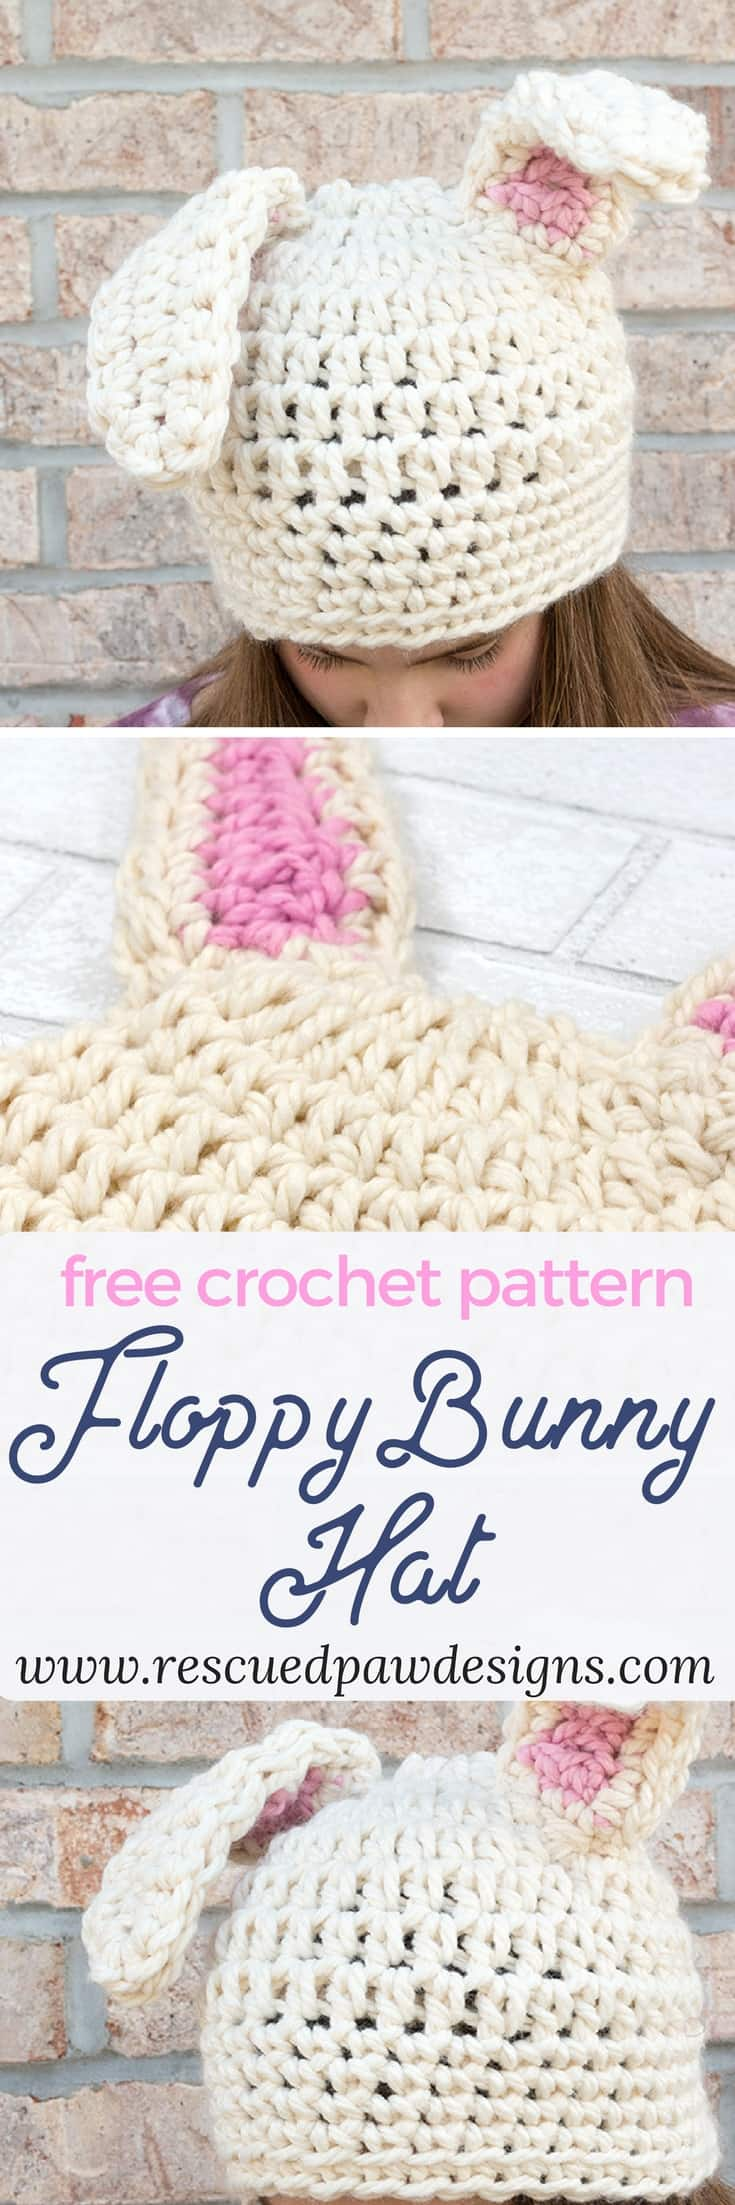 Free Crochet Pattern for a Floppy Bunny Hat from Rescued Paw Designs. Make this Crochet Bunny Hat today! rescuedpawdesigns.com  #crochetbunny #crocheteasterhat #crochetbunnyhat #freecrochetpattern